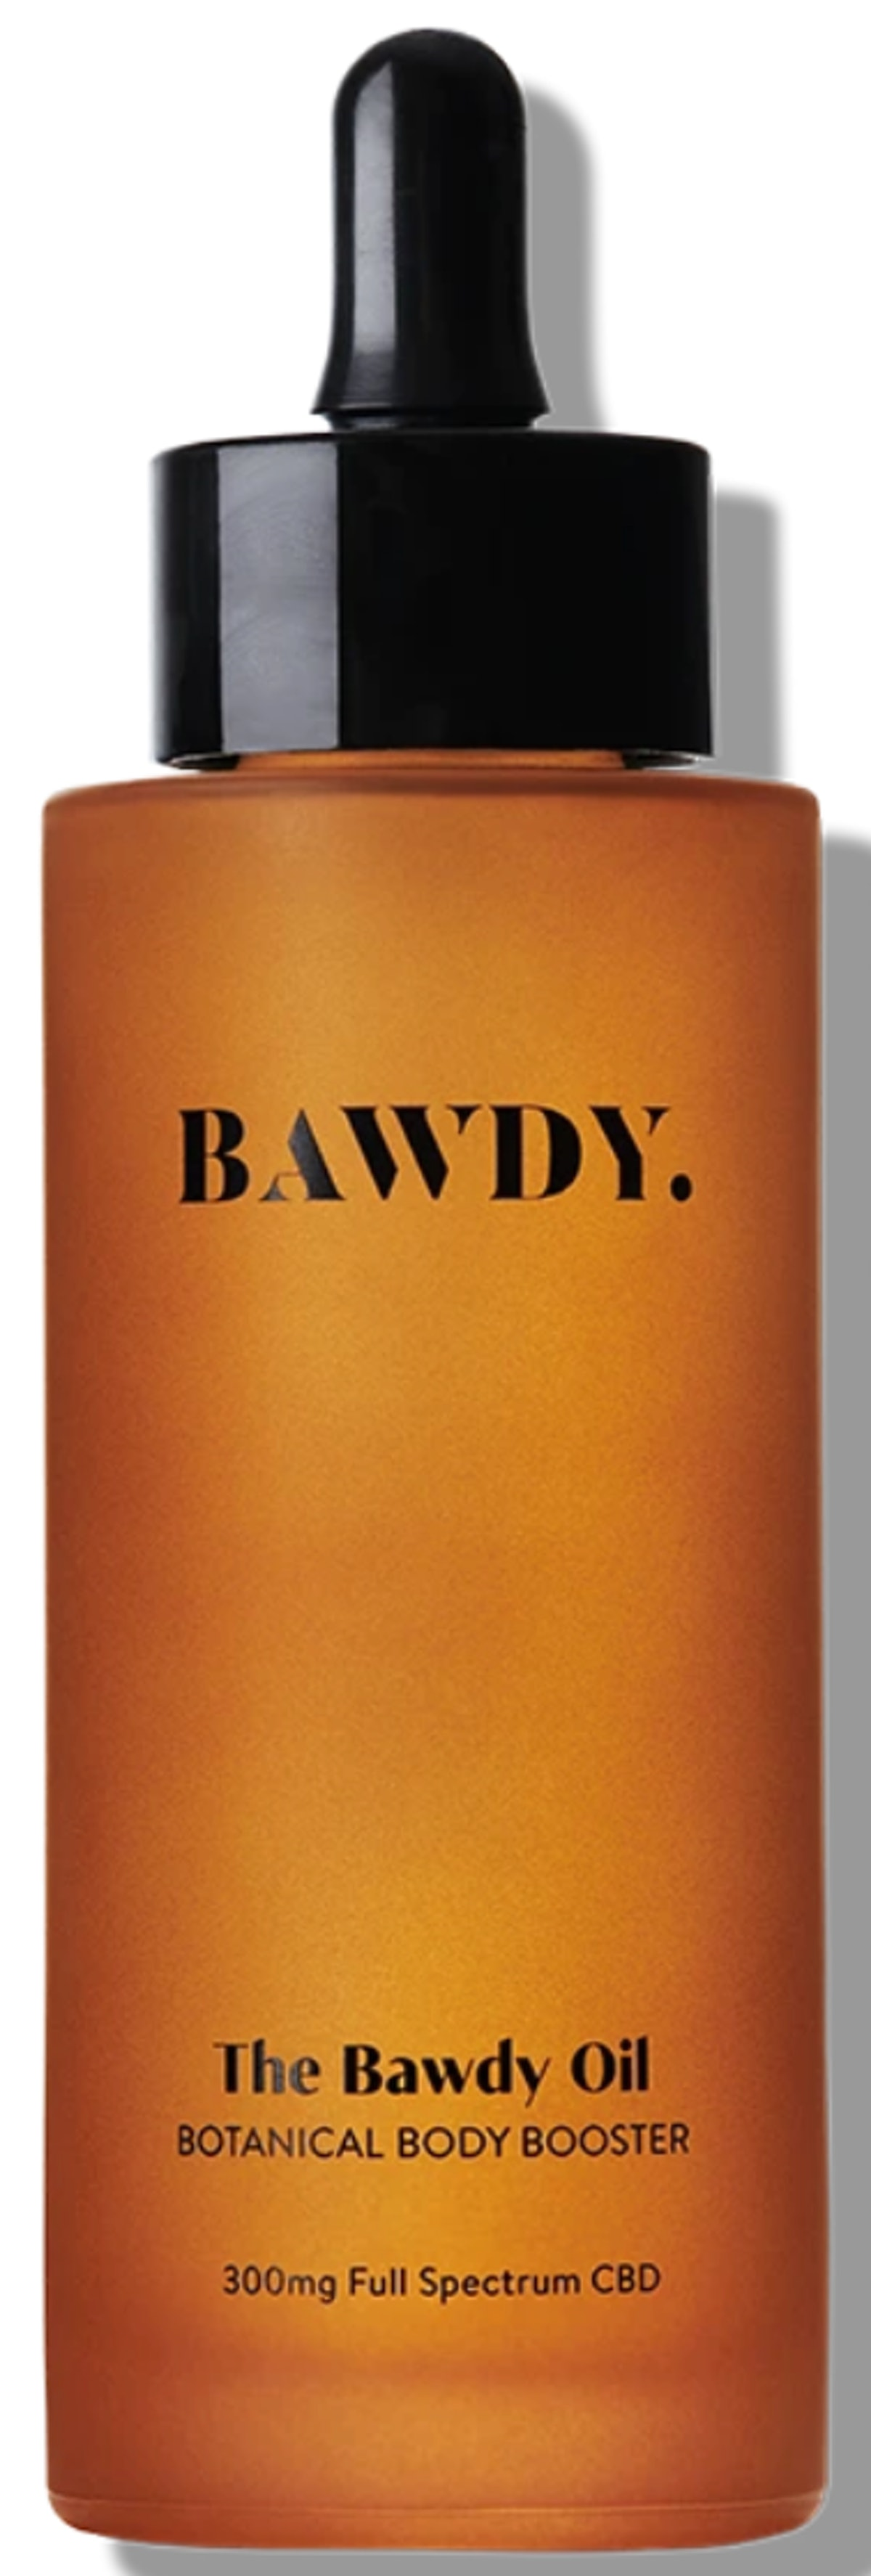 Extra Firm Bawdy Oil